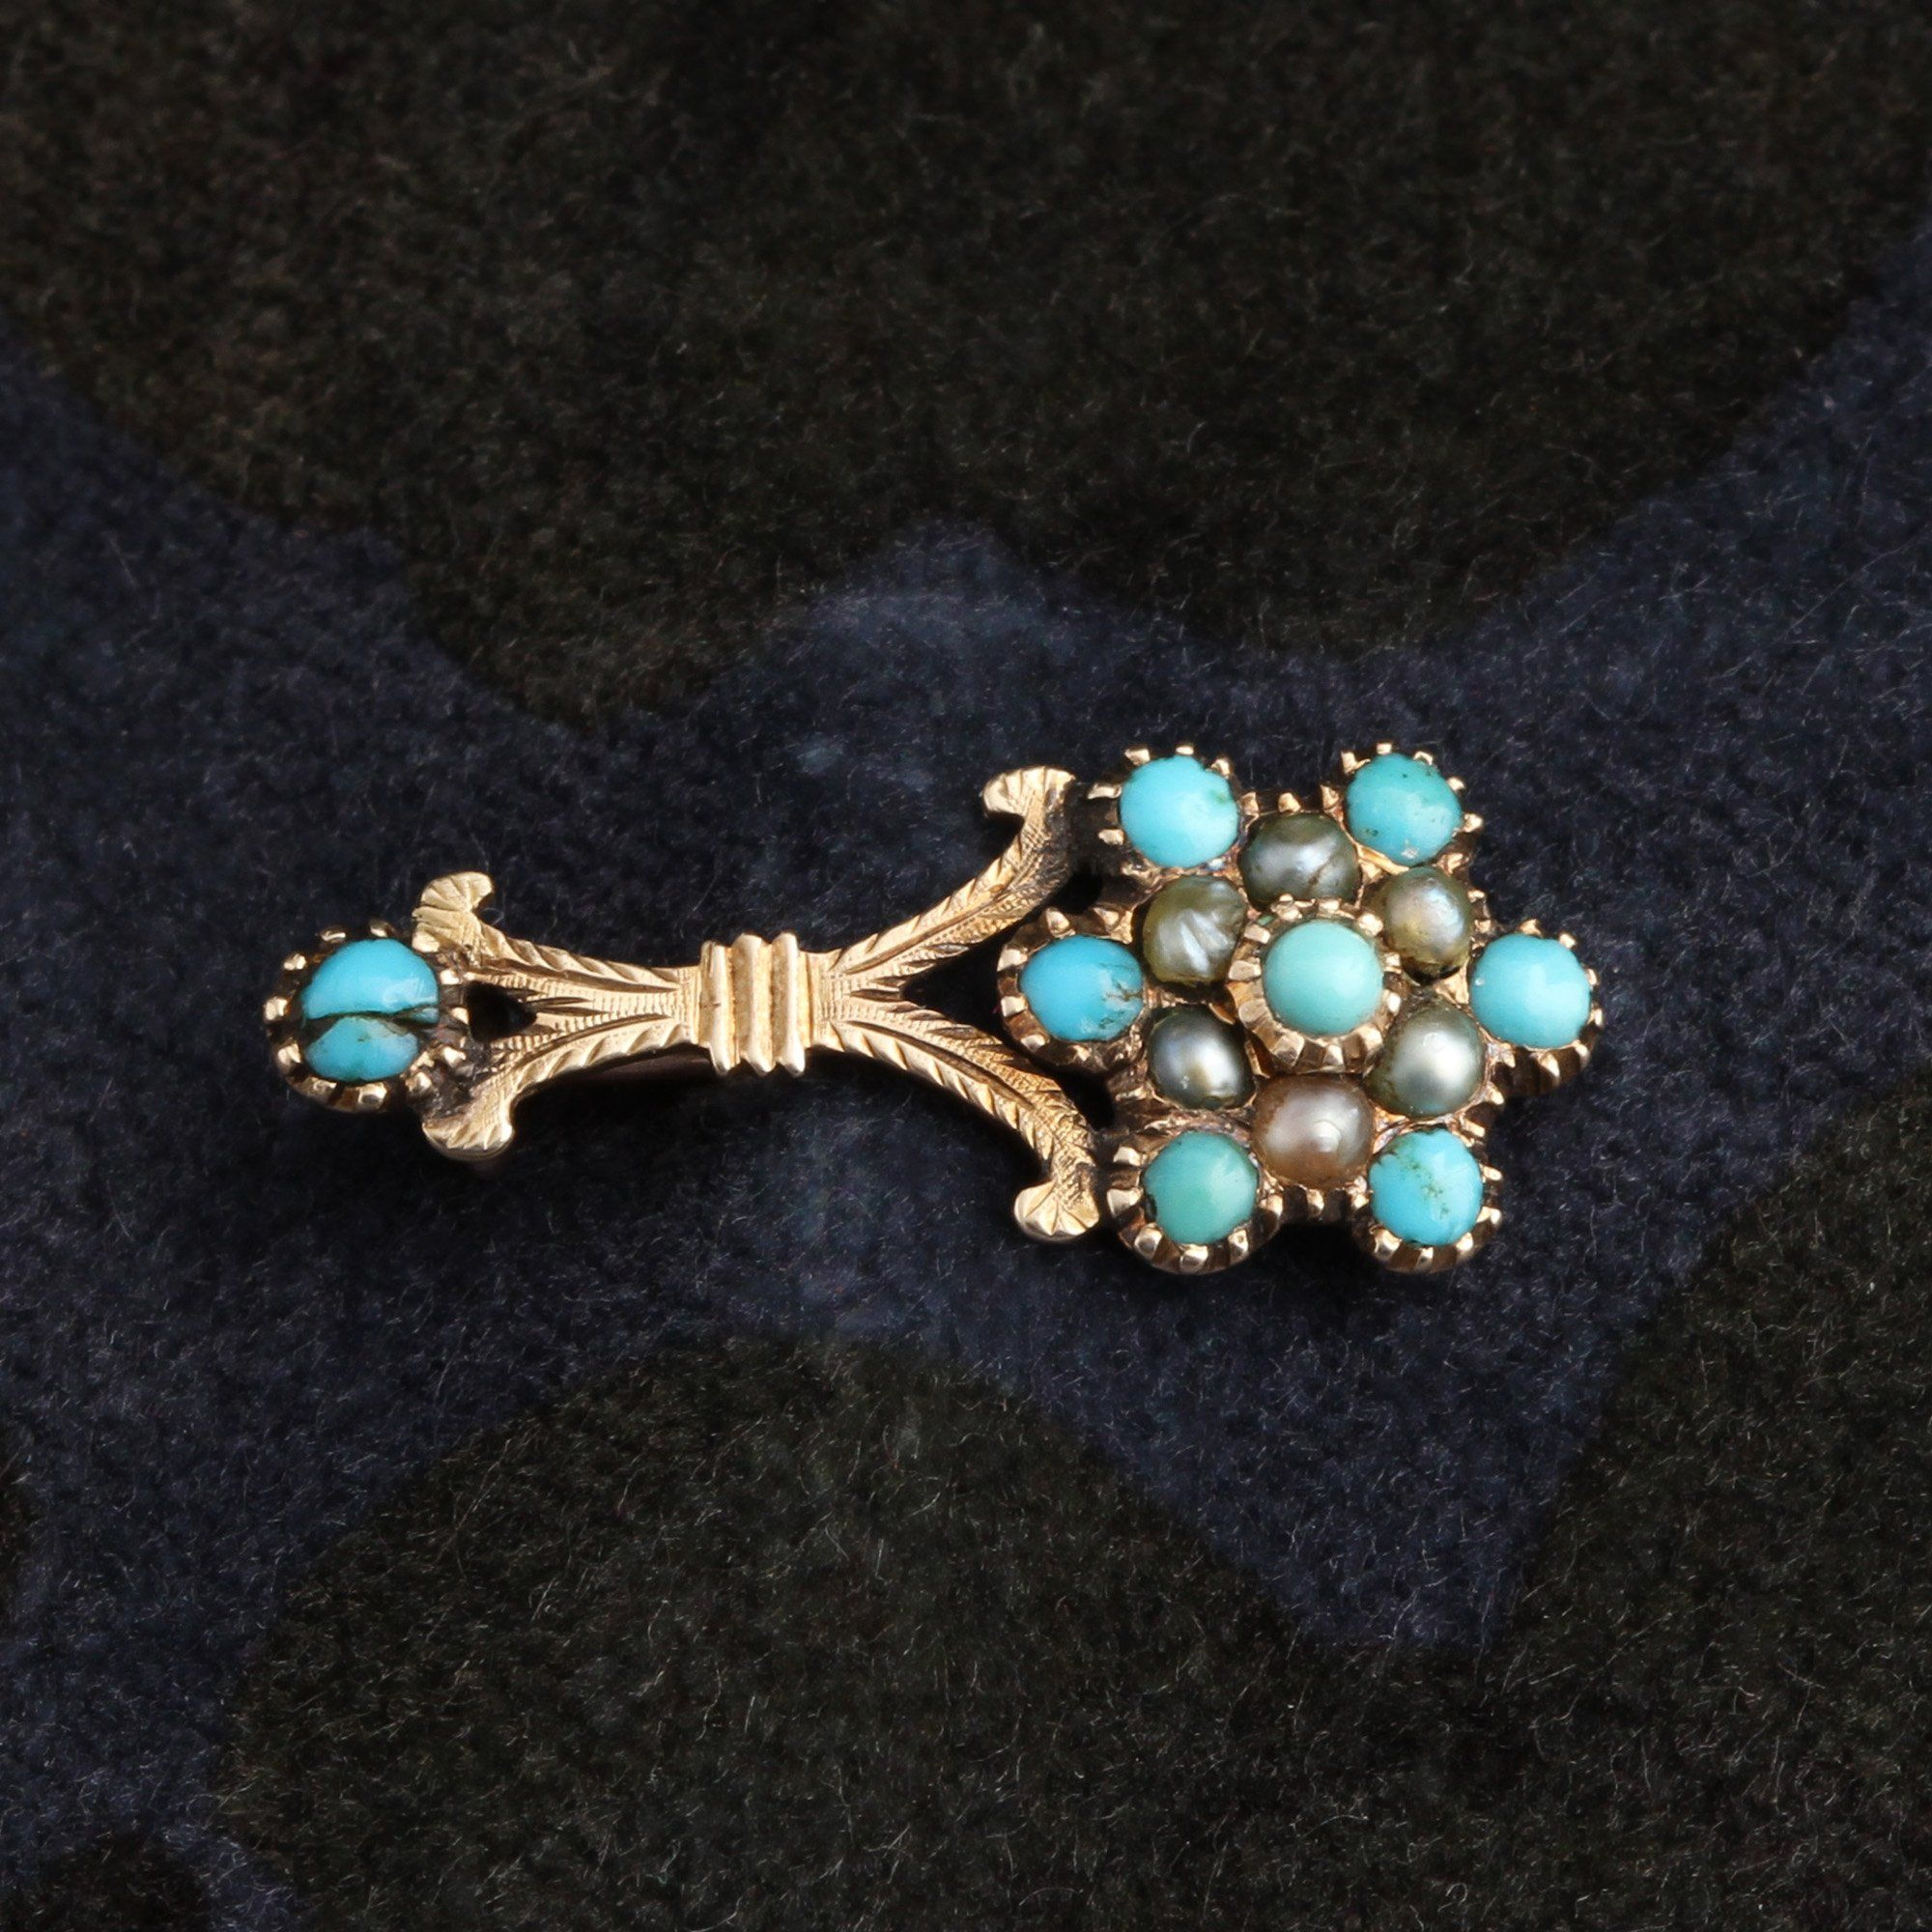 Front detail of Georgian Turquoise and Pearl Halley's Comet Brooch